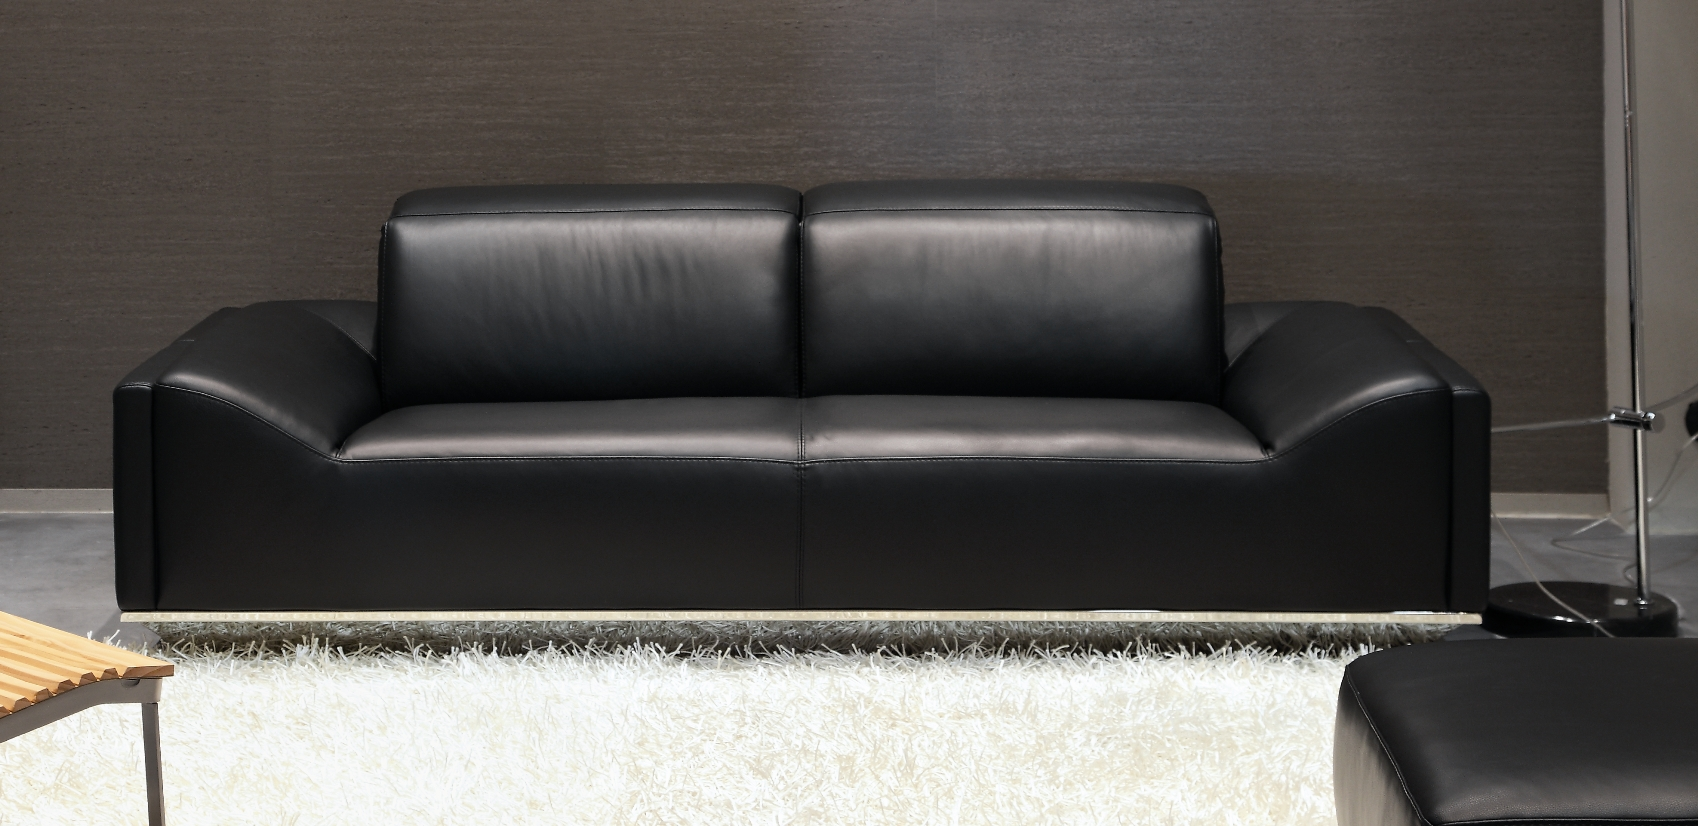 Modern Style Sofa modern style sofa. luxury fine home furnishings, high quality